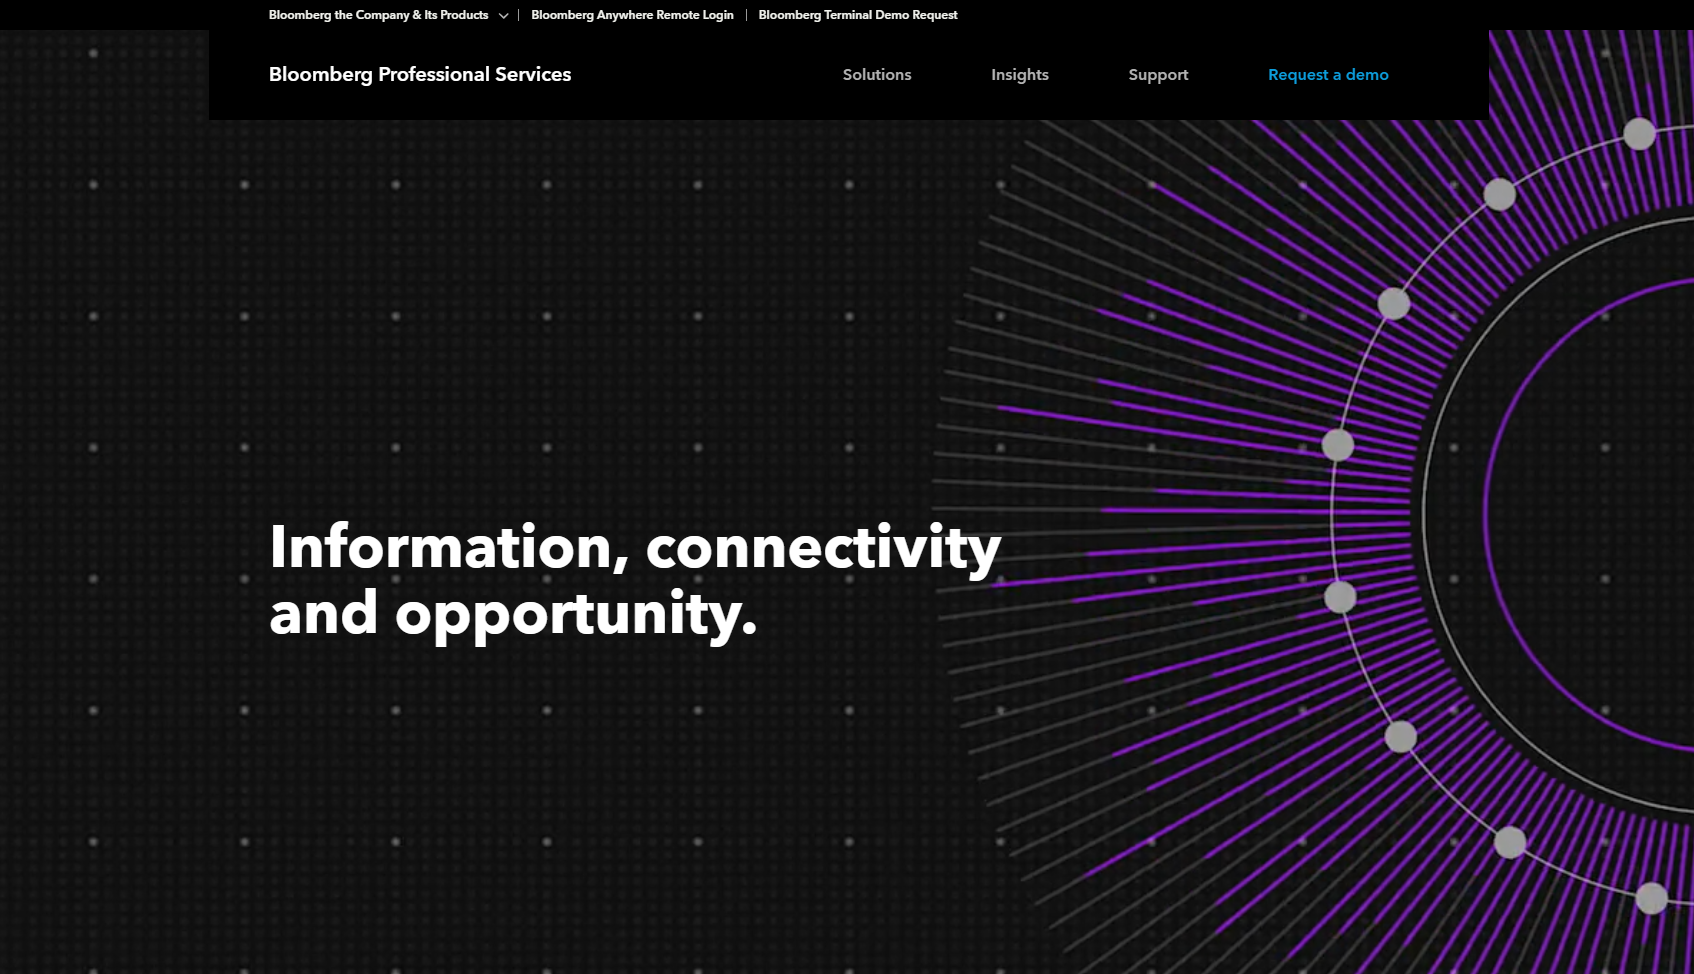 Universities | Bloomberg Professional Services